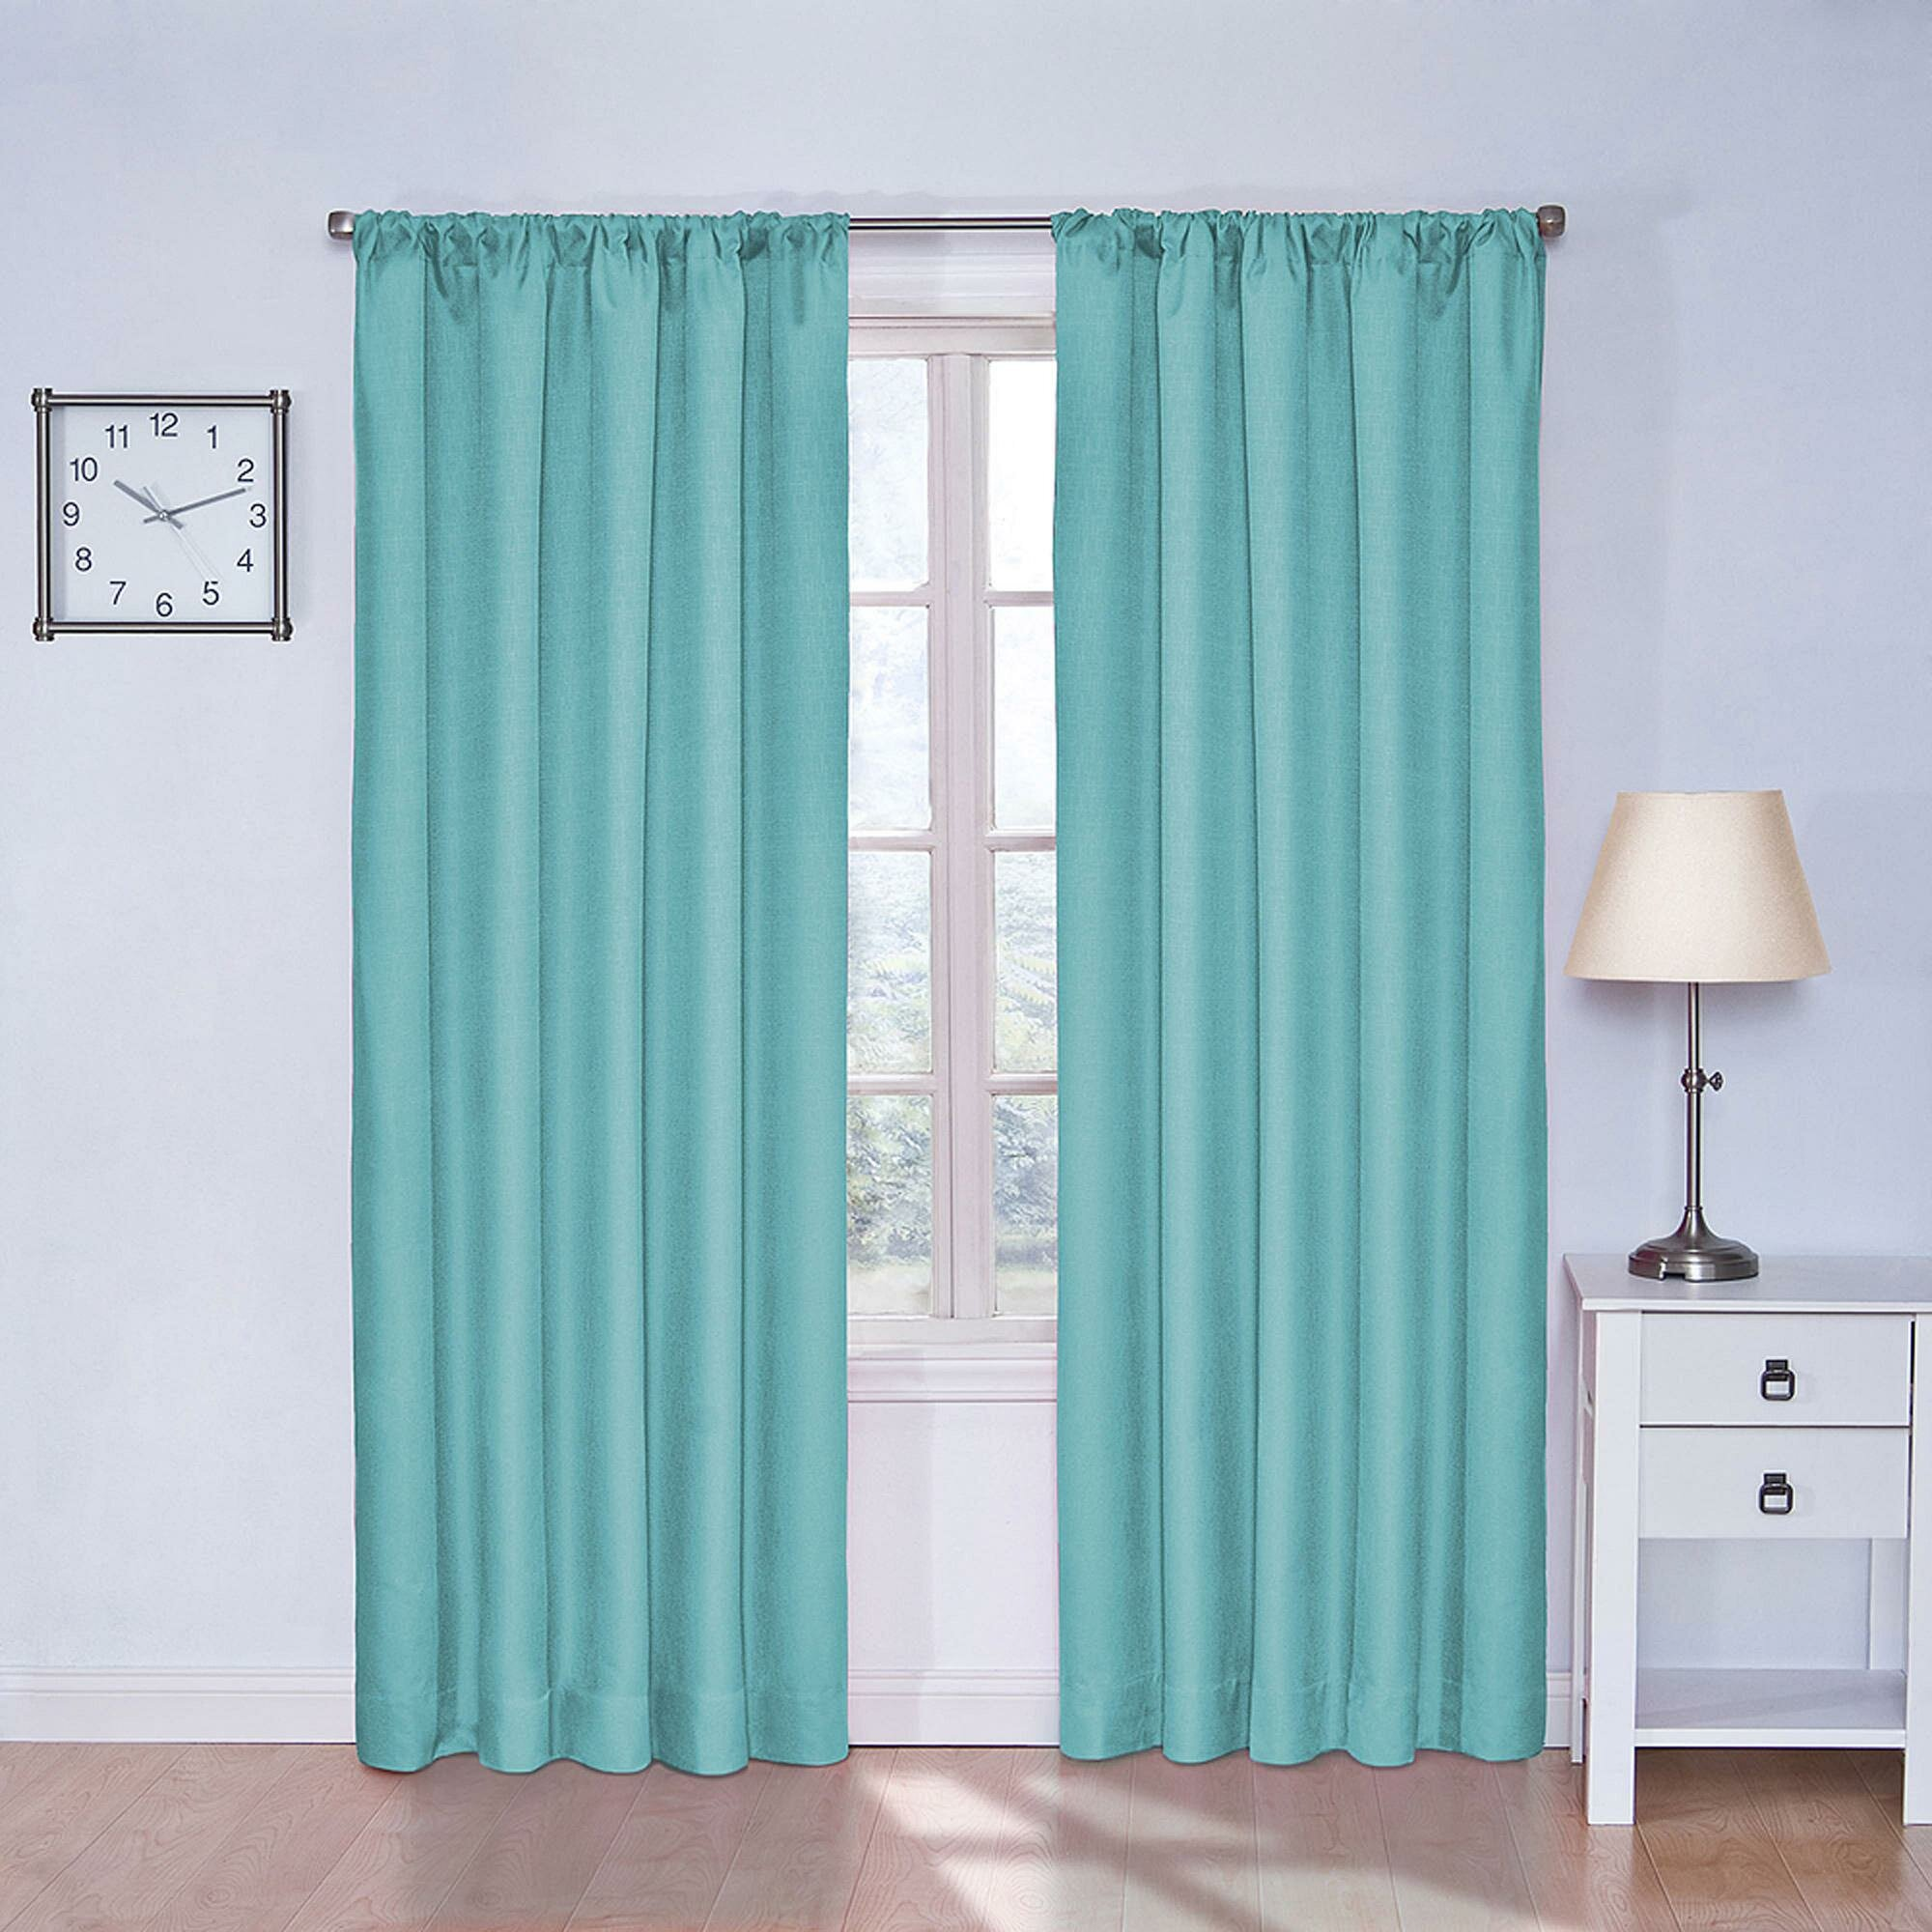 Walmart Draperies Curtains | Curtains at Walmart | Walmart Curtain